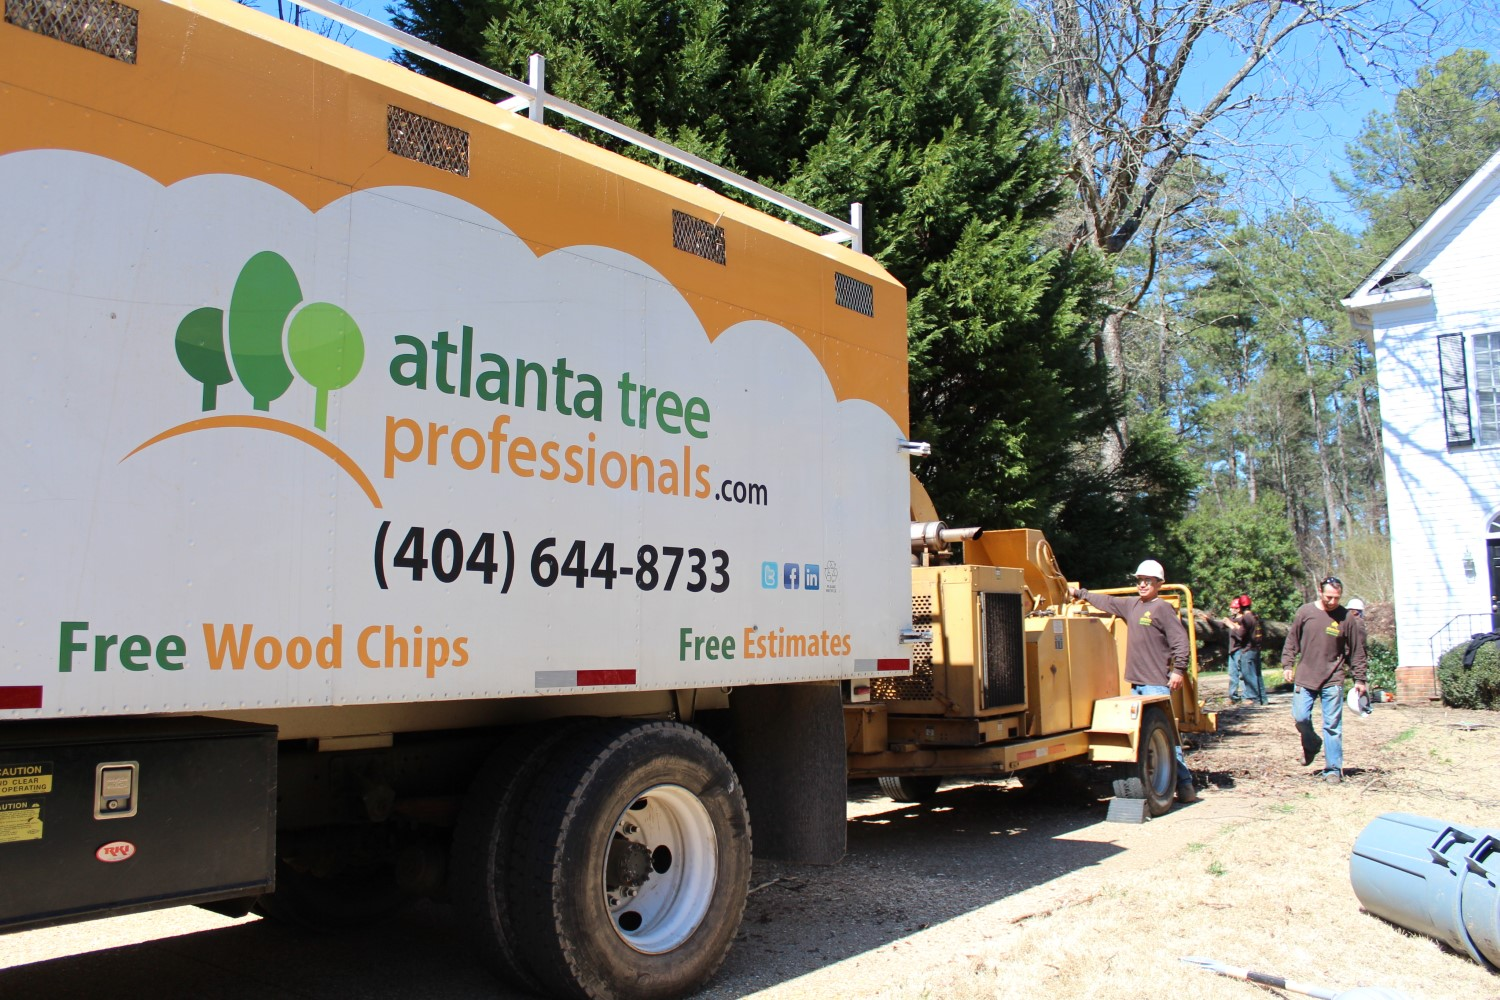 For tree removal Sandy Springs GA calls ATP for dependable tree service.